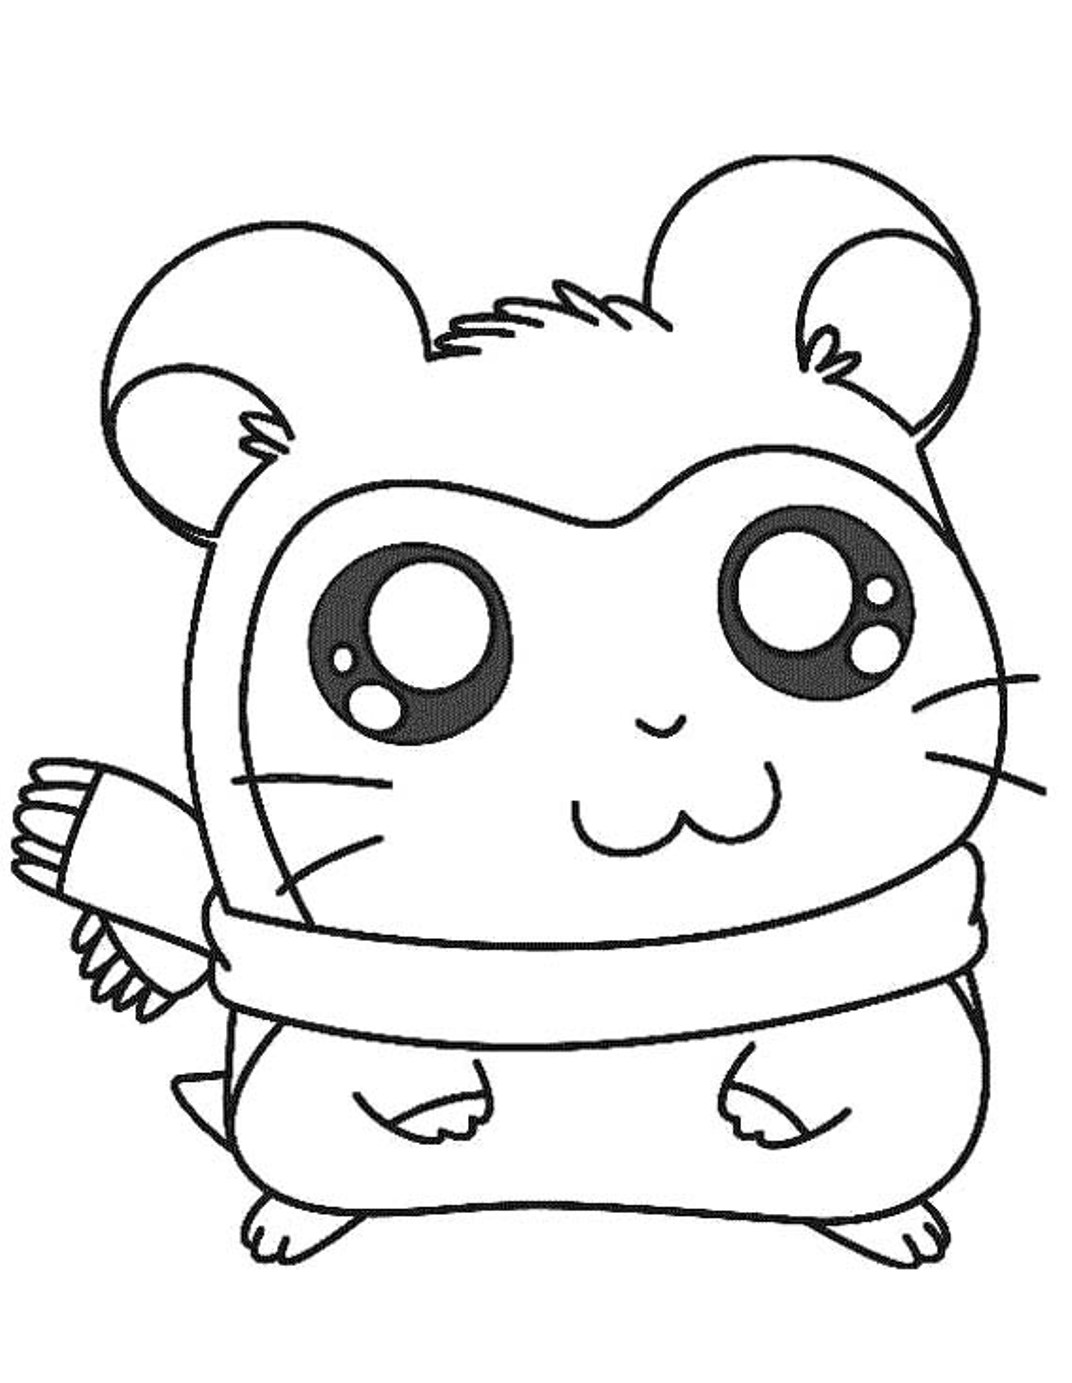 Guinea Pig Coloring Pages To Download And Print For Free